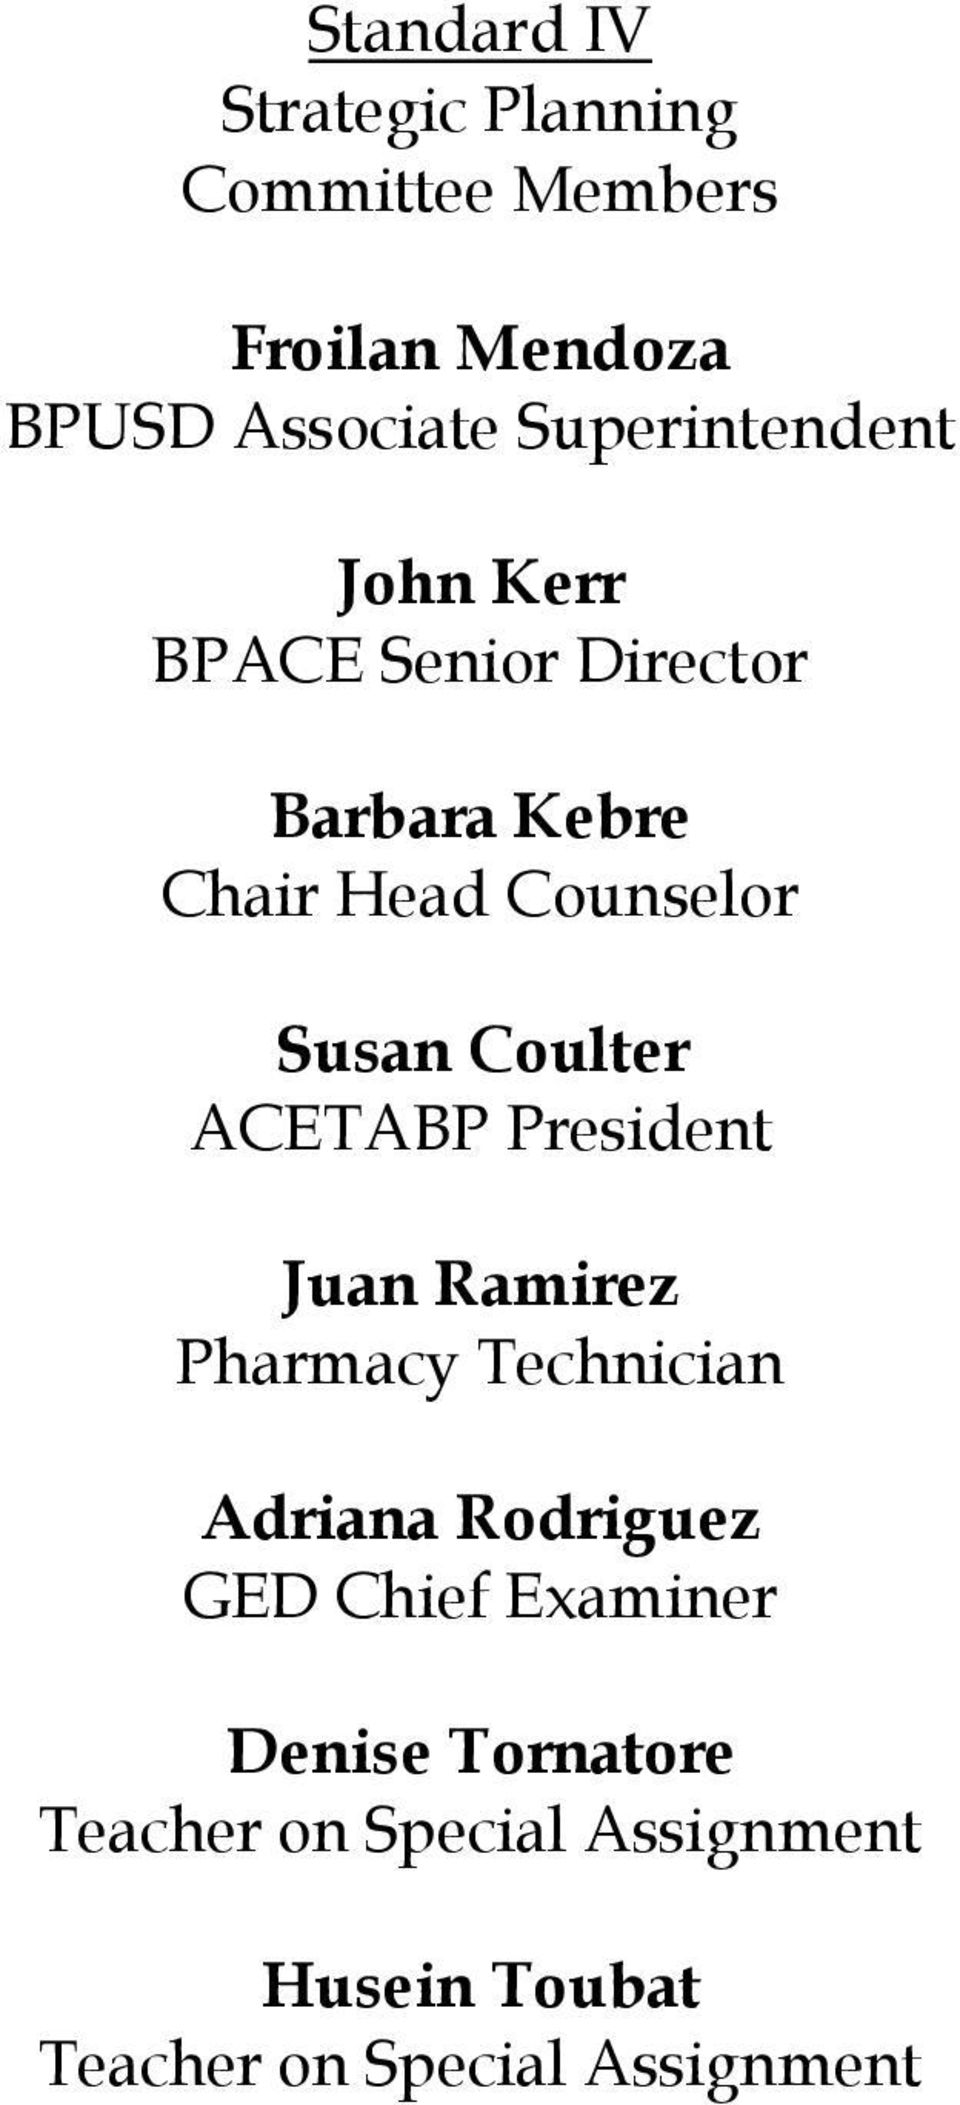 Coulter ACETABP President Juan Ramirez Pharmacy Technician Adriana Rodriguez GED Chief